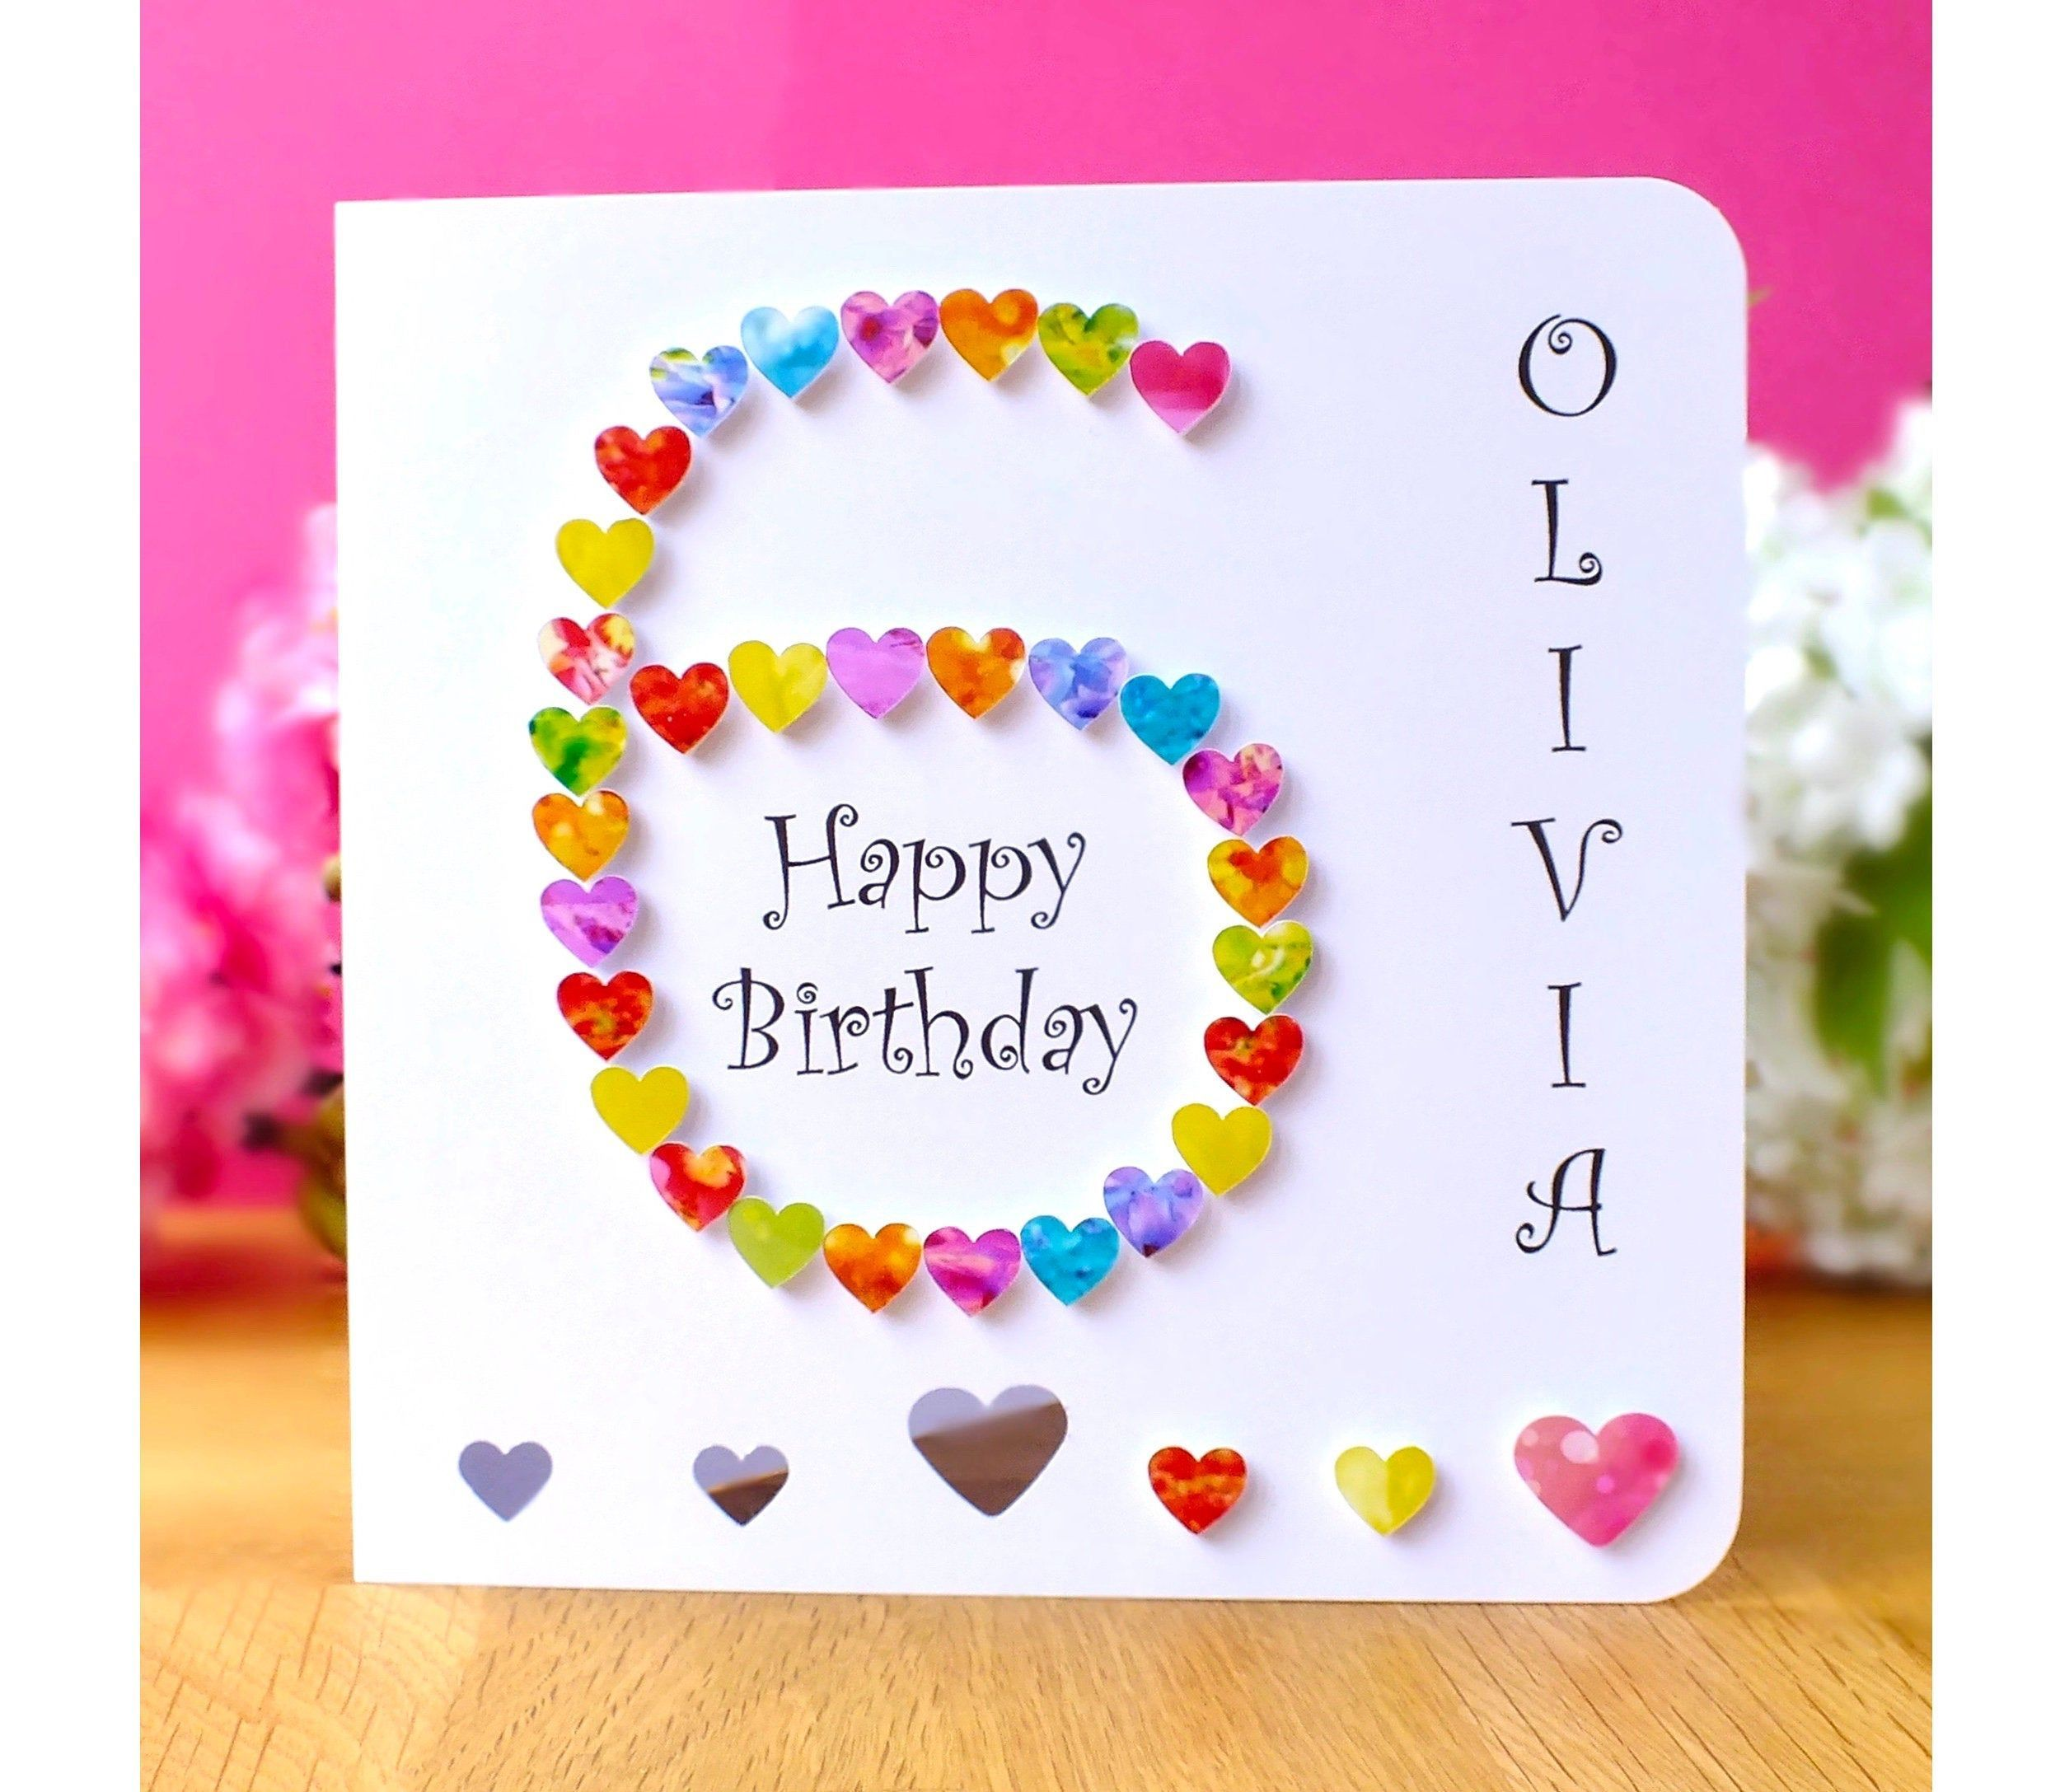 6th Birthday Card Personalised And Handmade Age 6 Card Customised 6th Birthday Card Ideal Son D Simple Birthday Cards Birthday Cards Kids Birthday Cards